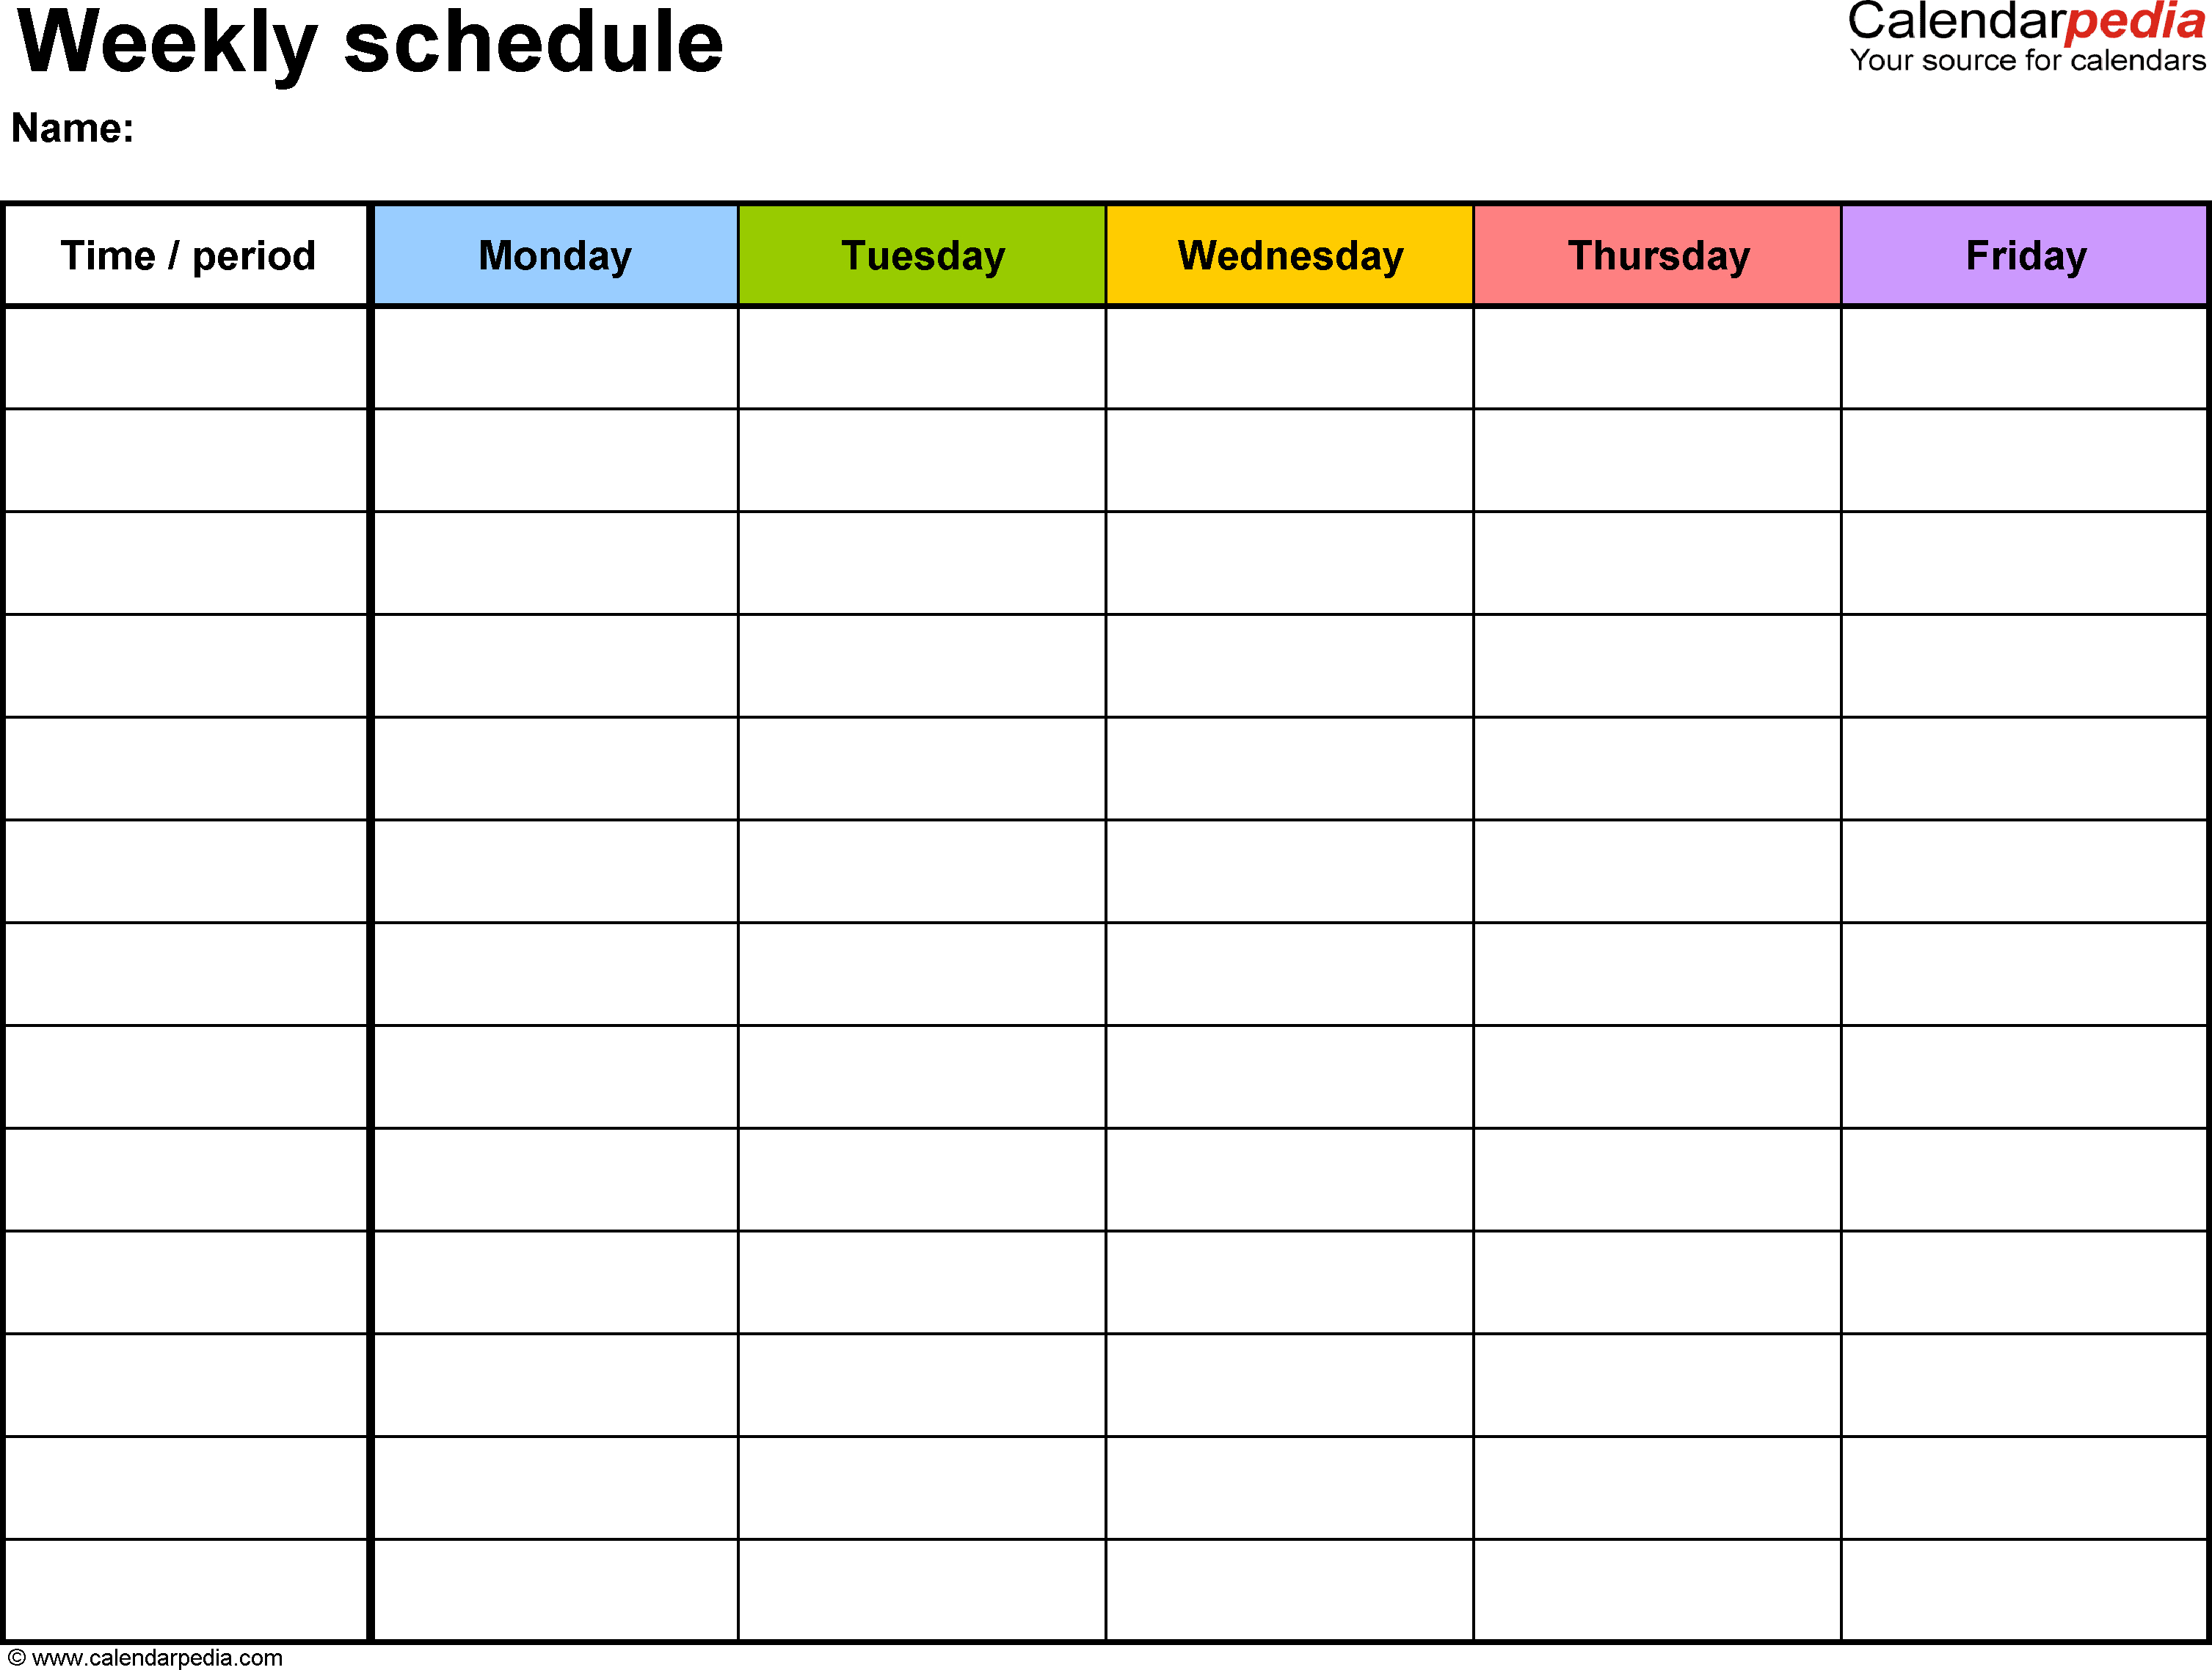 Free Weekly Schedule Templates For Excel   18 Templates And Free Online Spreadsheet Templates